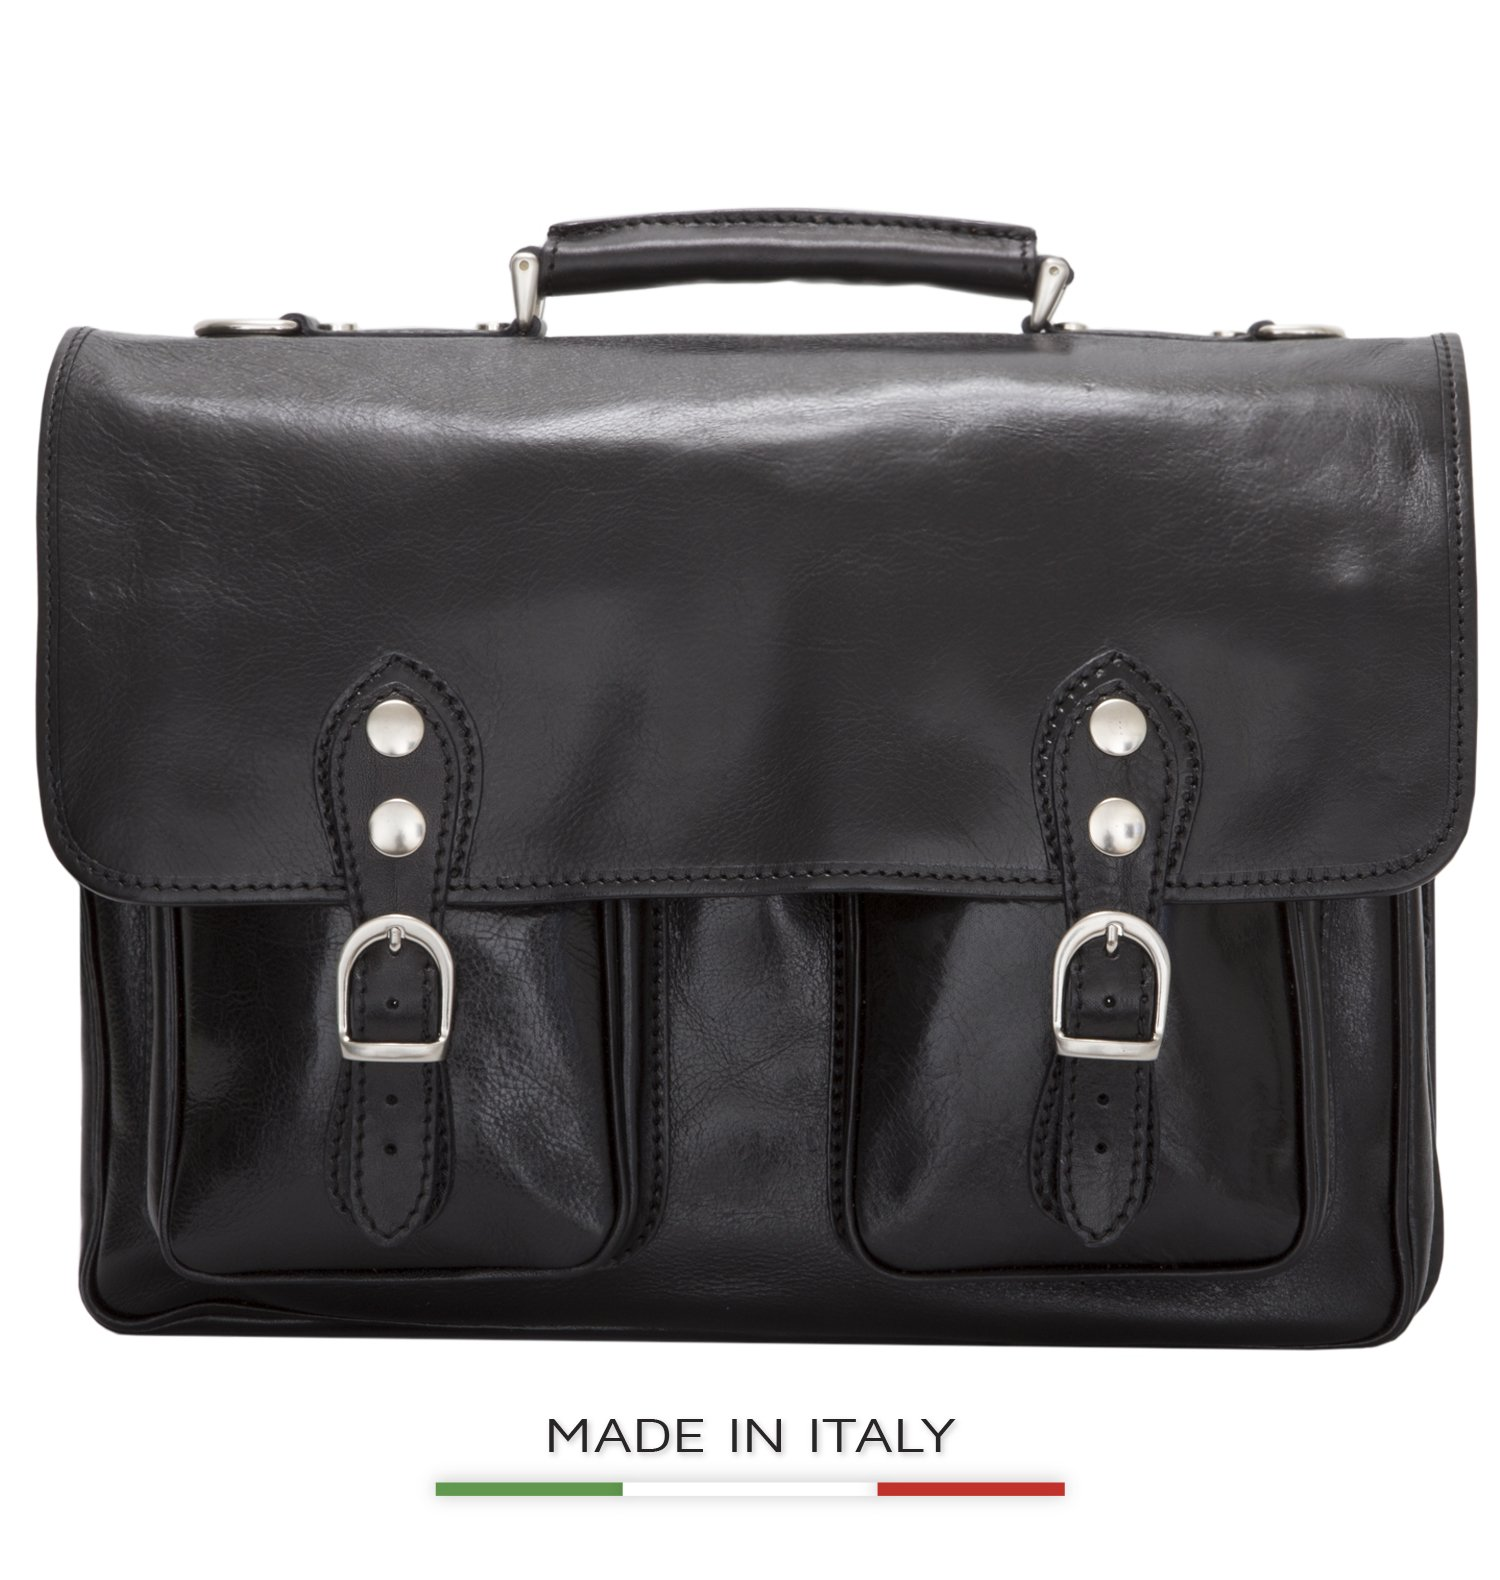 Luggage Depot USA, LLC Men's Alberto Bellucci Italian Leather Express Satchel Laptop Messenger Bag, Black, One Size